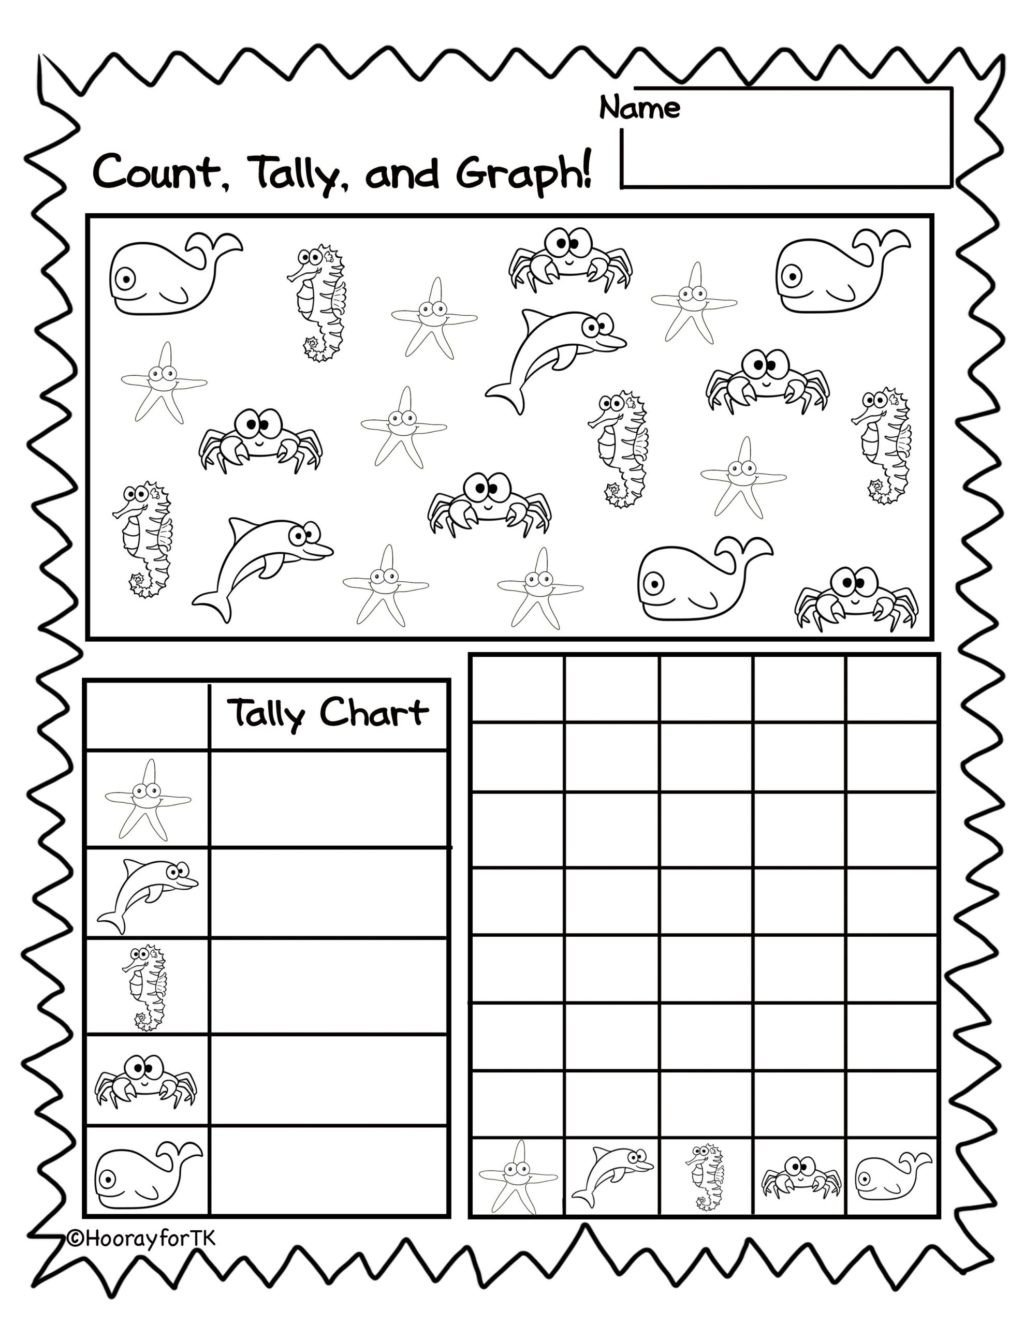 phenomenal kindergarten printables math worksheet creative writing for worksheets grade language teaching techniques puter programs fun halloween activities to do with 1024x1325